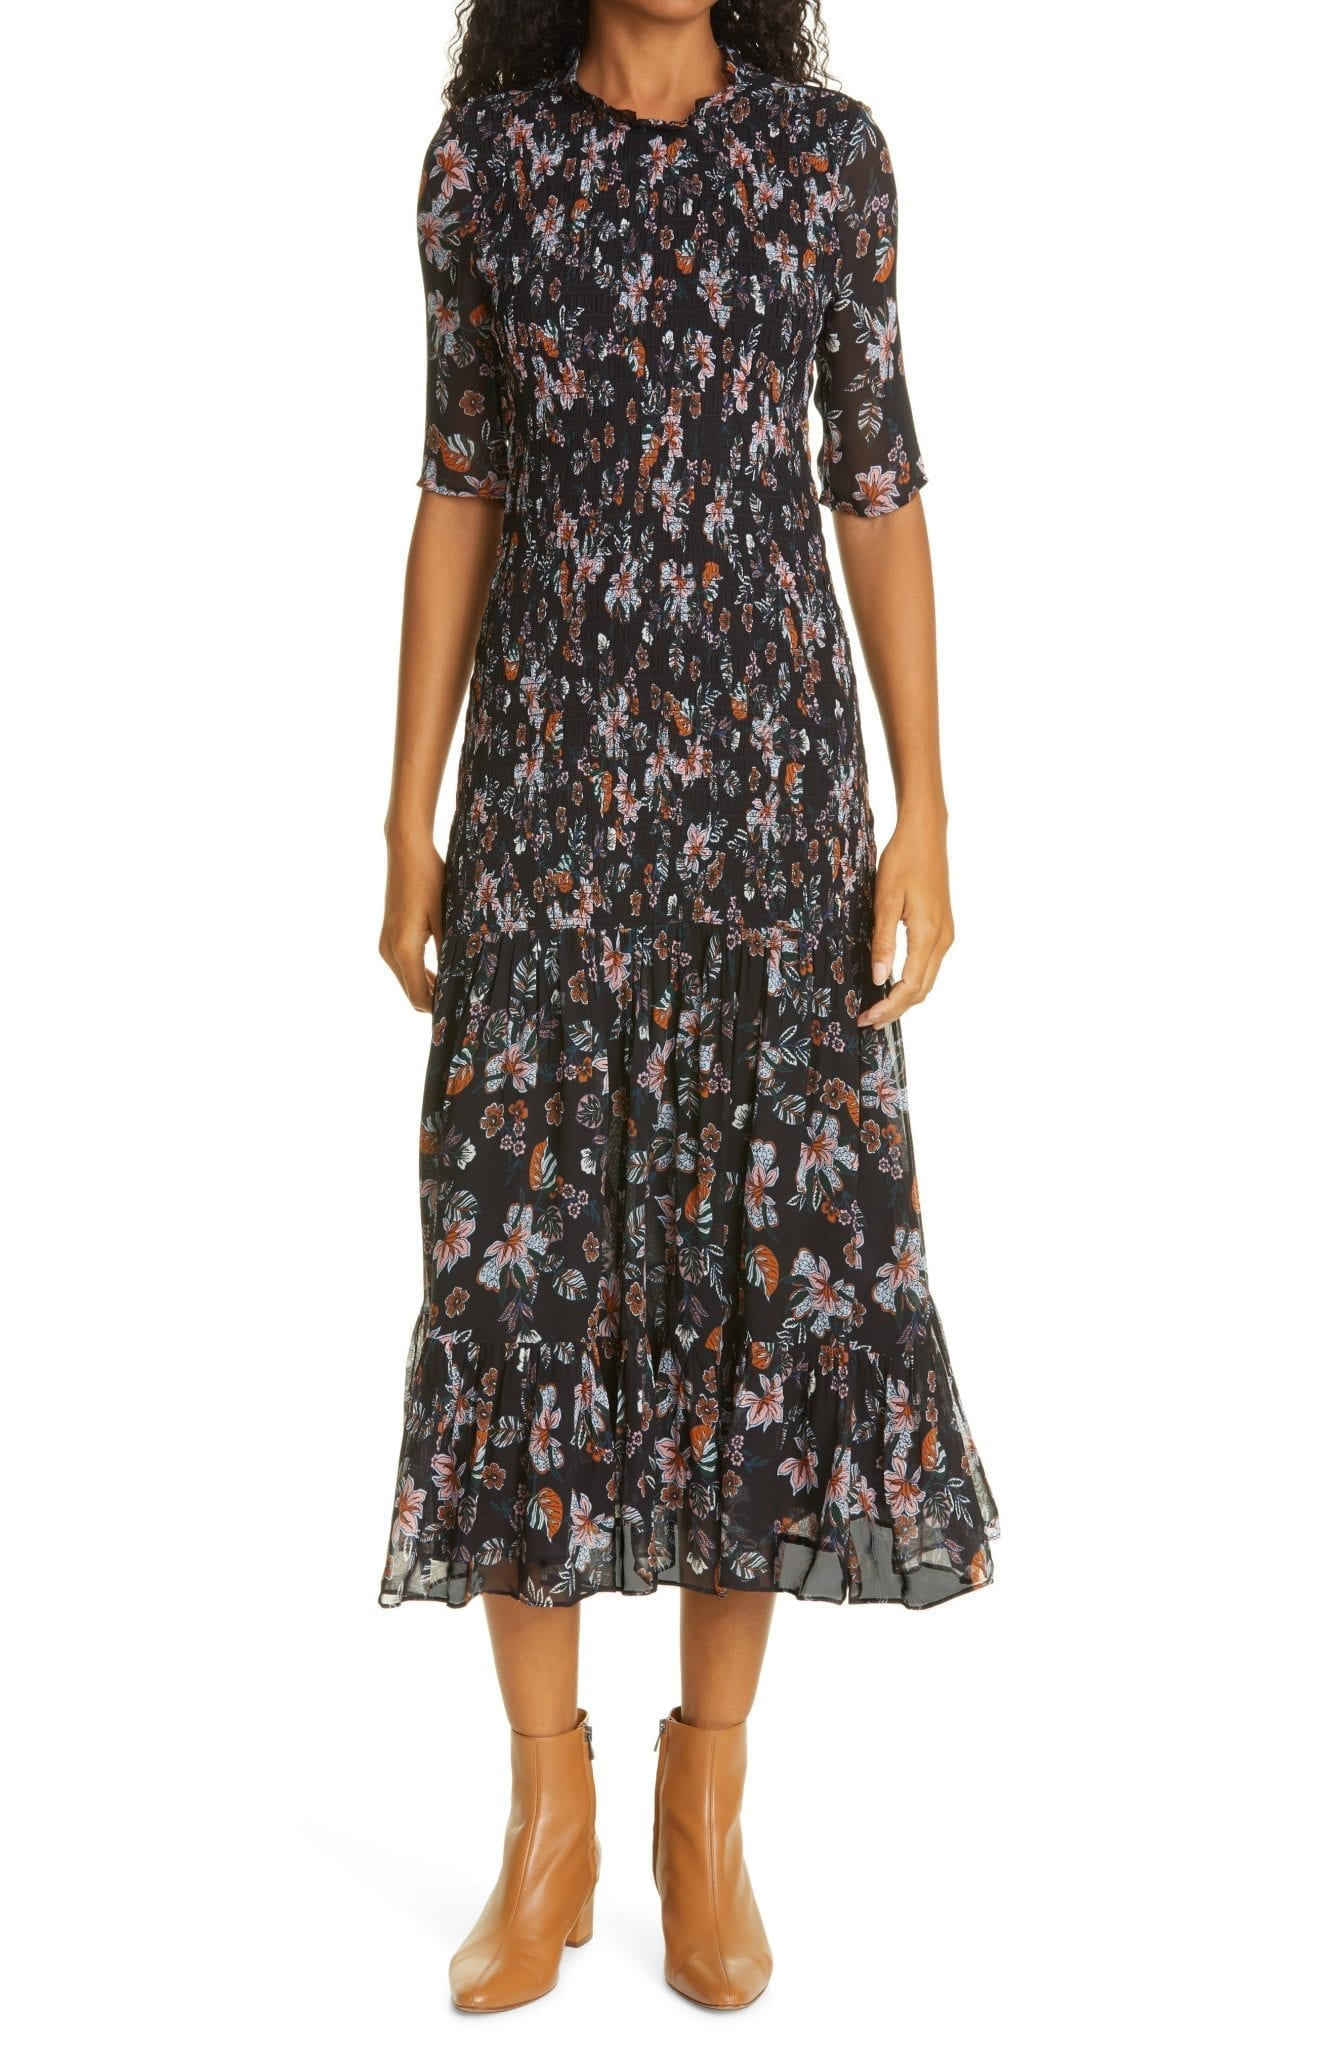 VERONICA BEARD Gabi Floral Print Dress